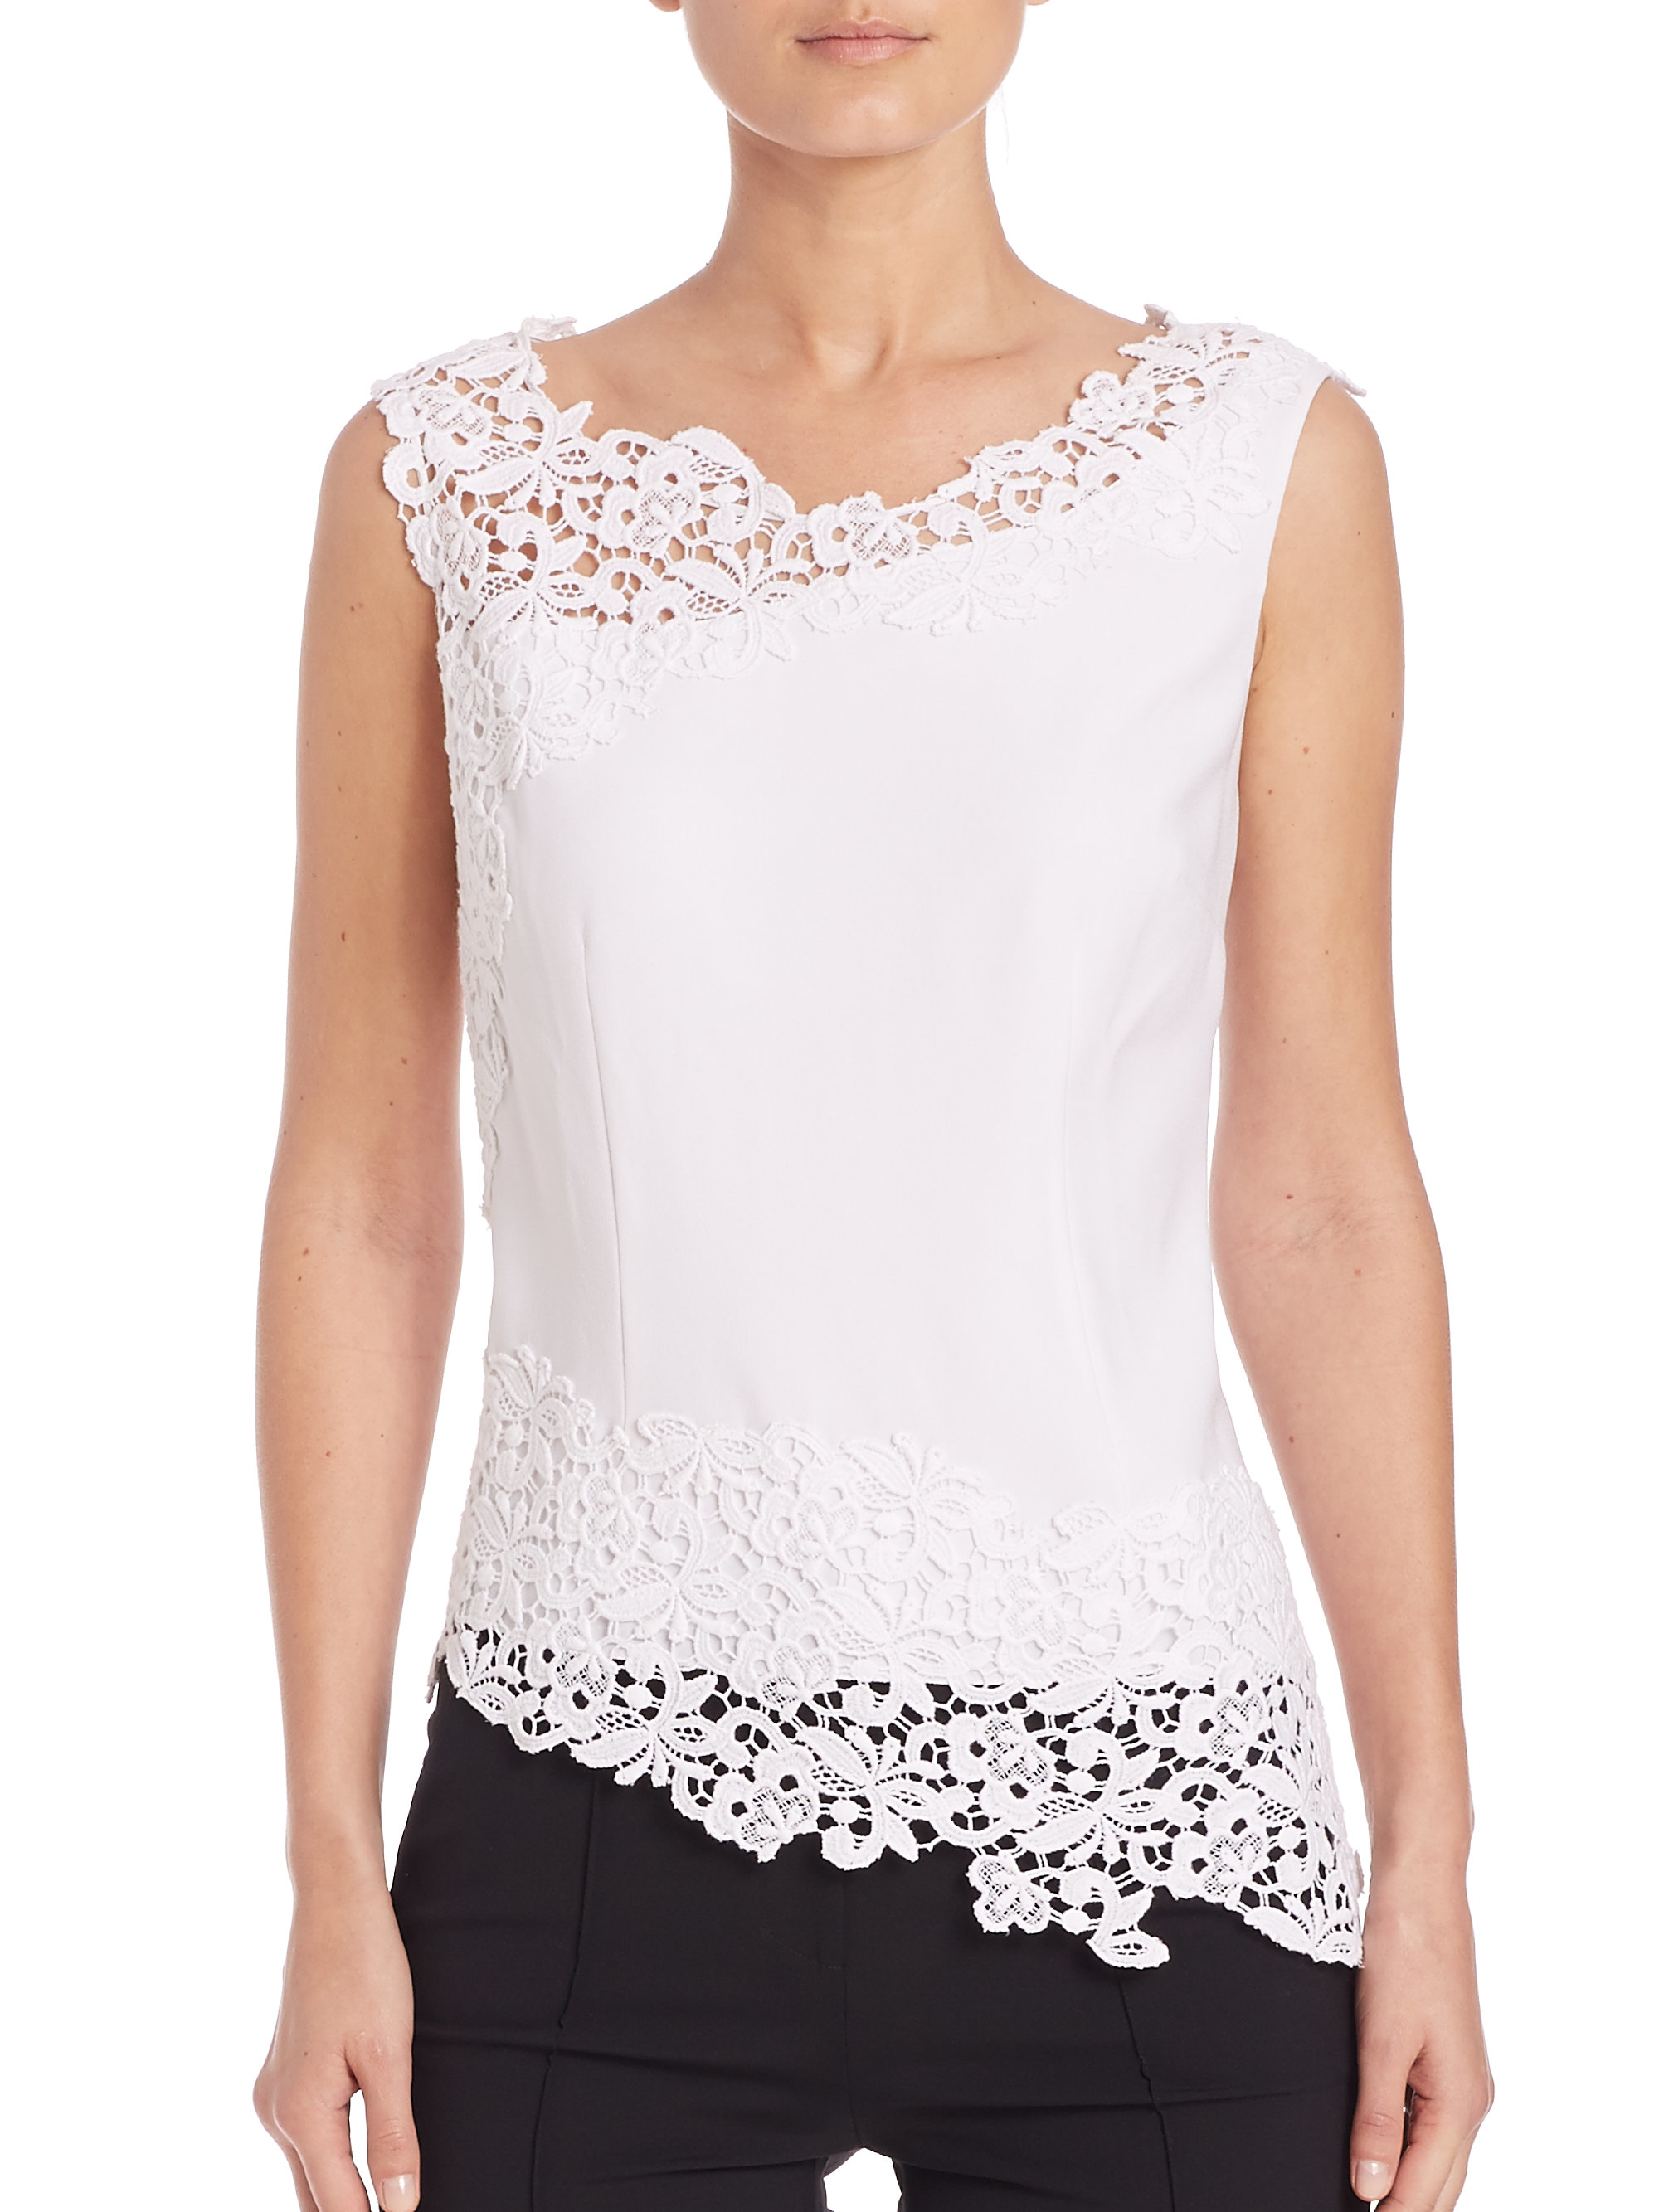 5849e9261be4aa Elie Tahari Soobin Blouse in White - Lyst